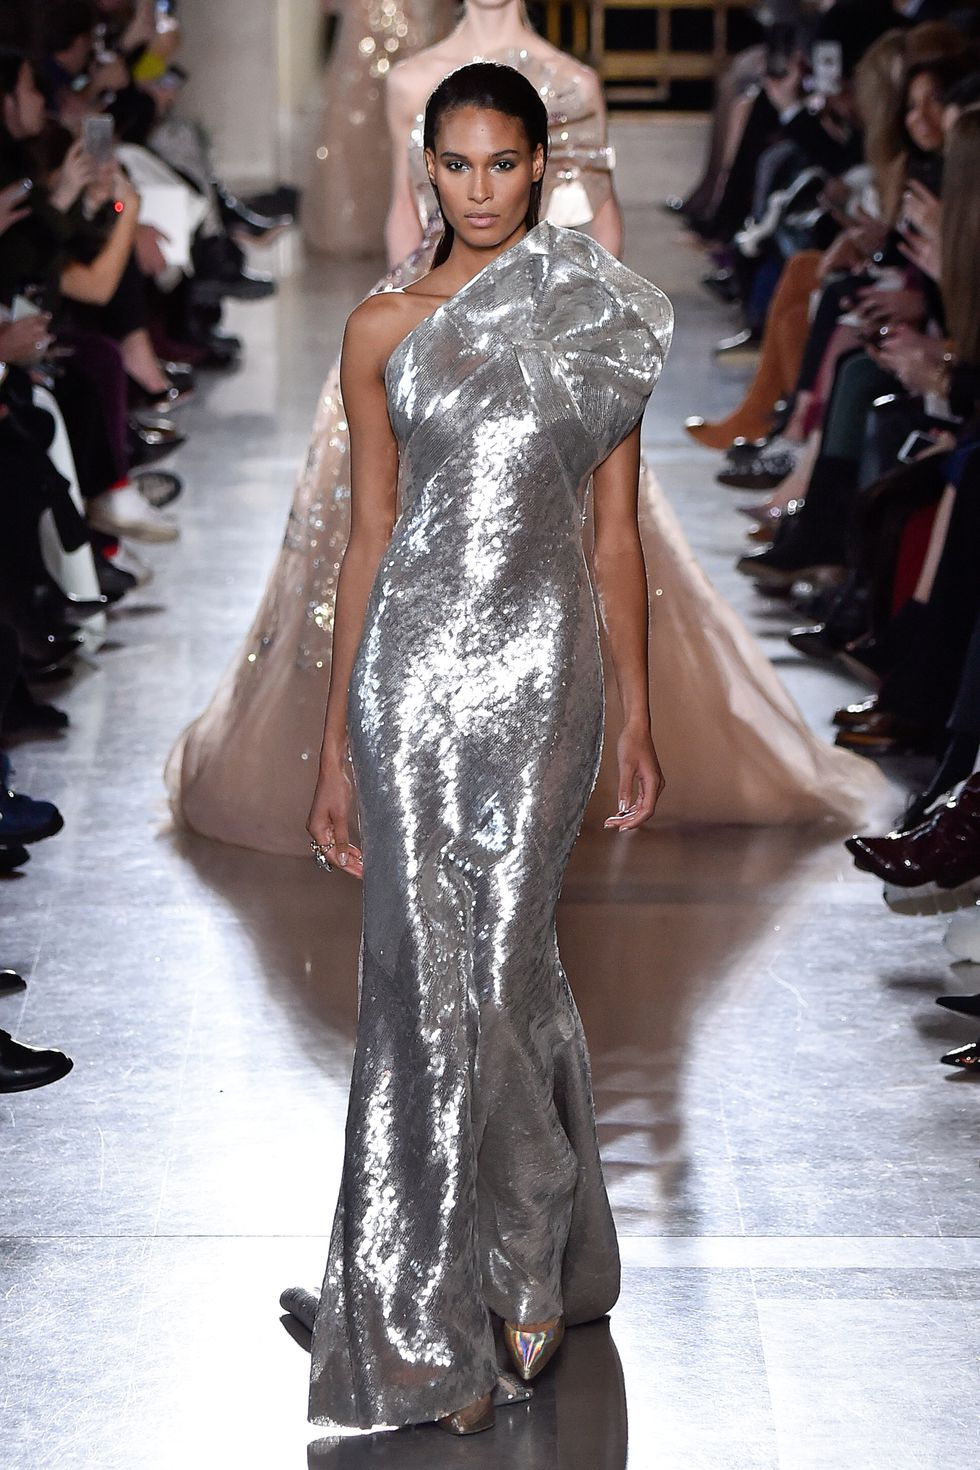 elie saab couture ss19 5 1548331916 1 - elie-saab-couture-ss19-5-1548331916